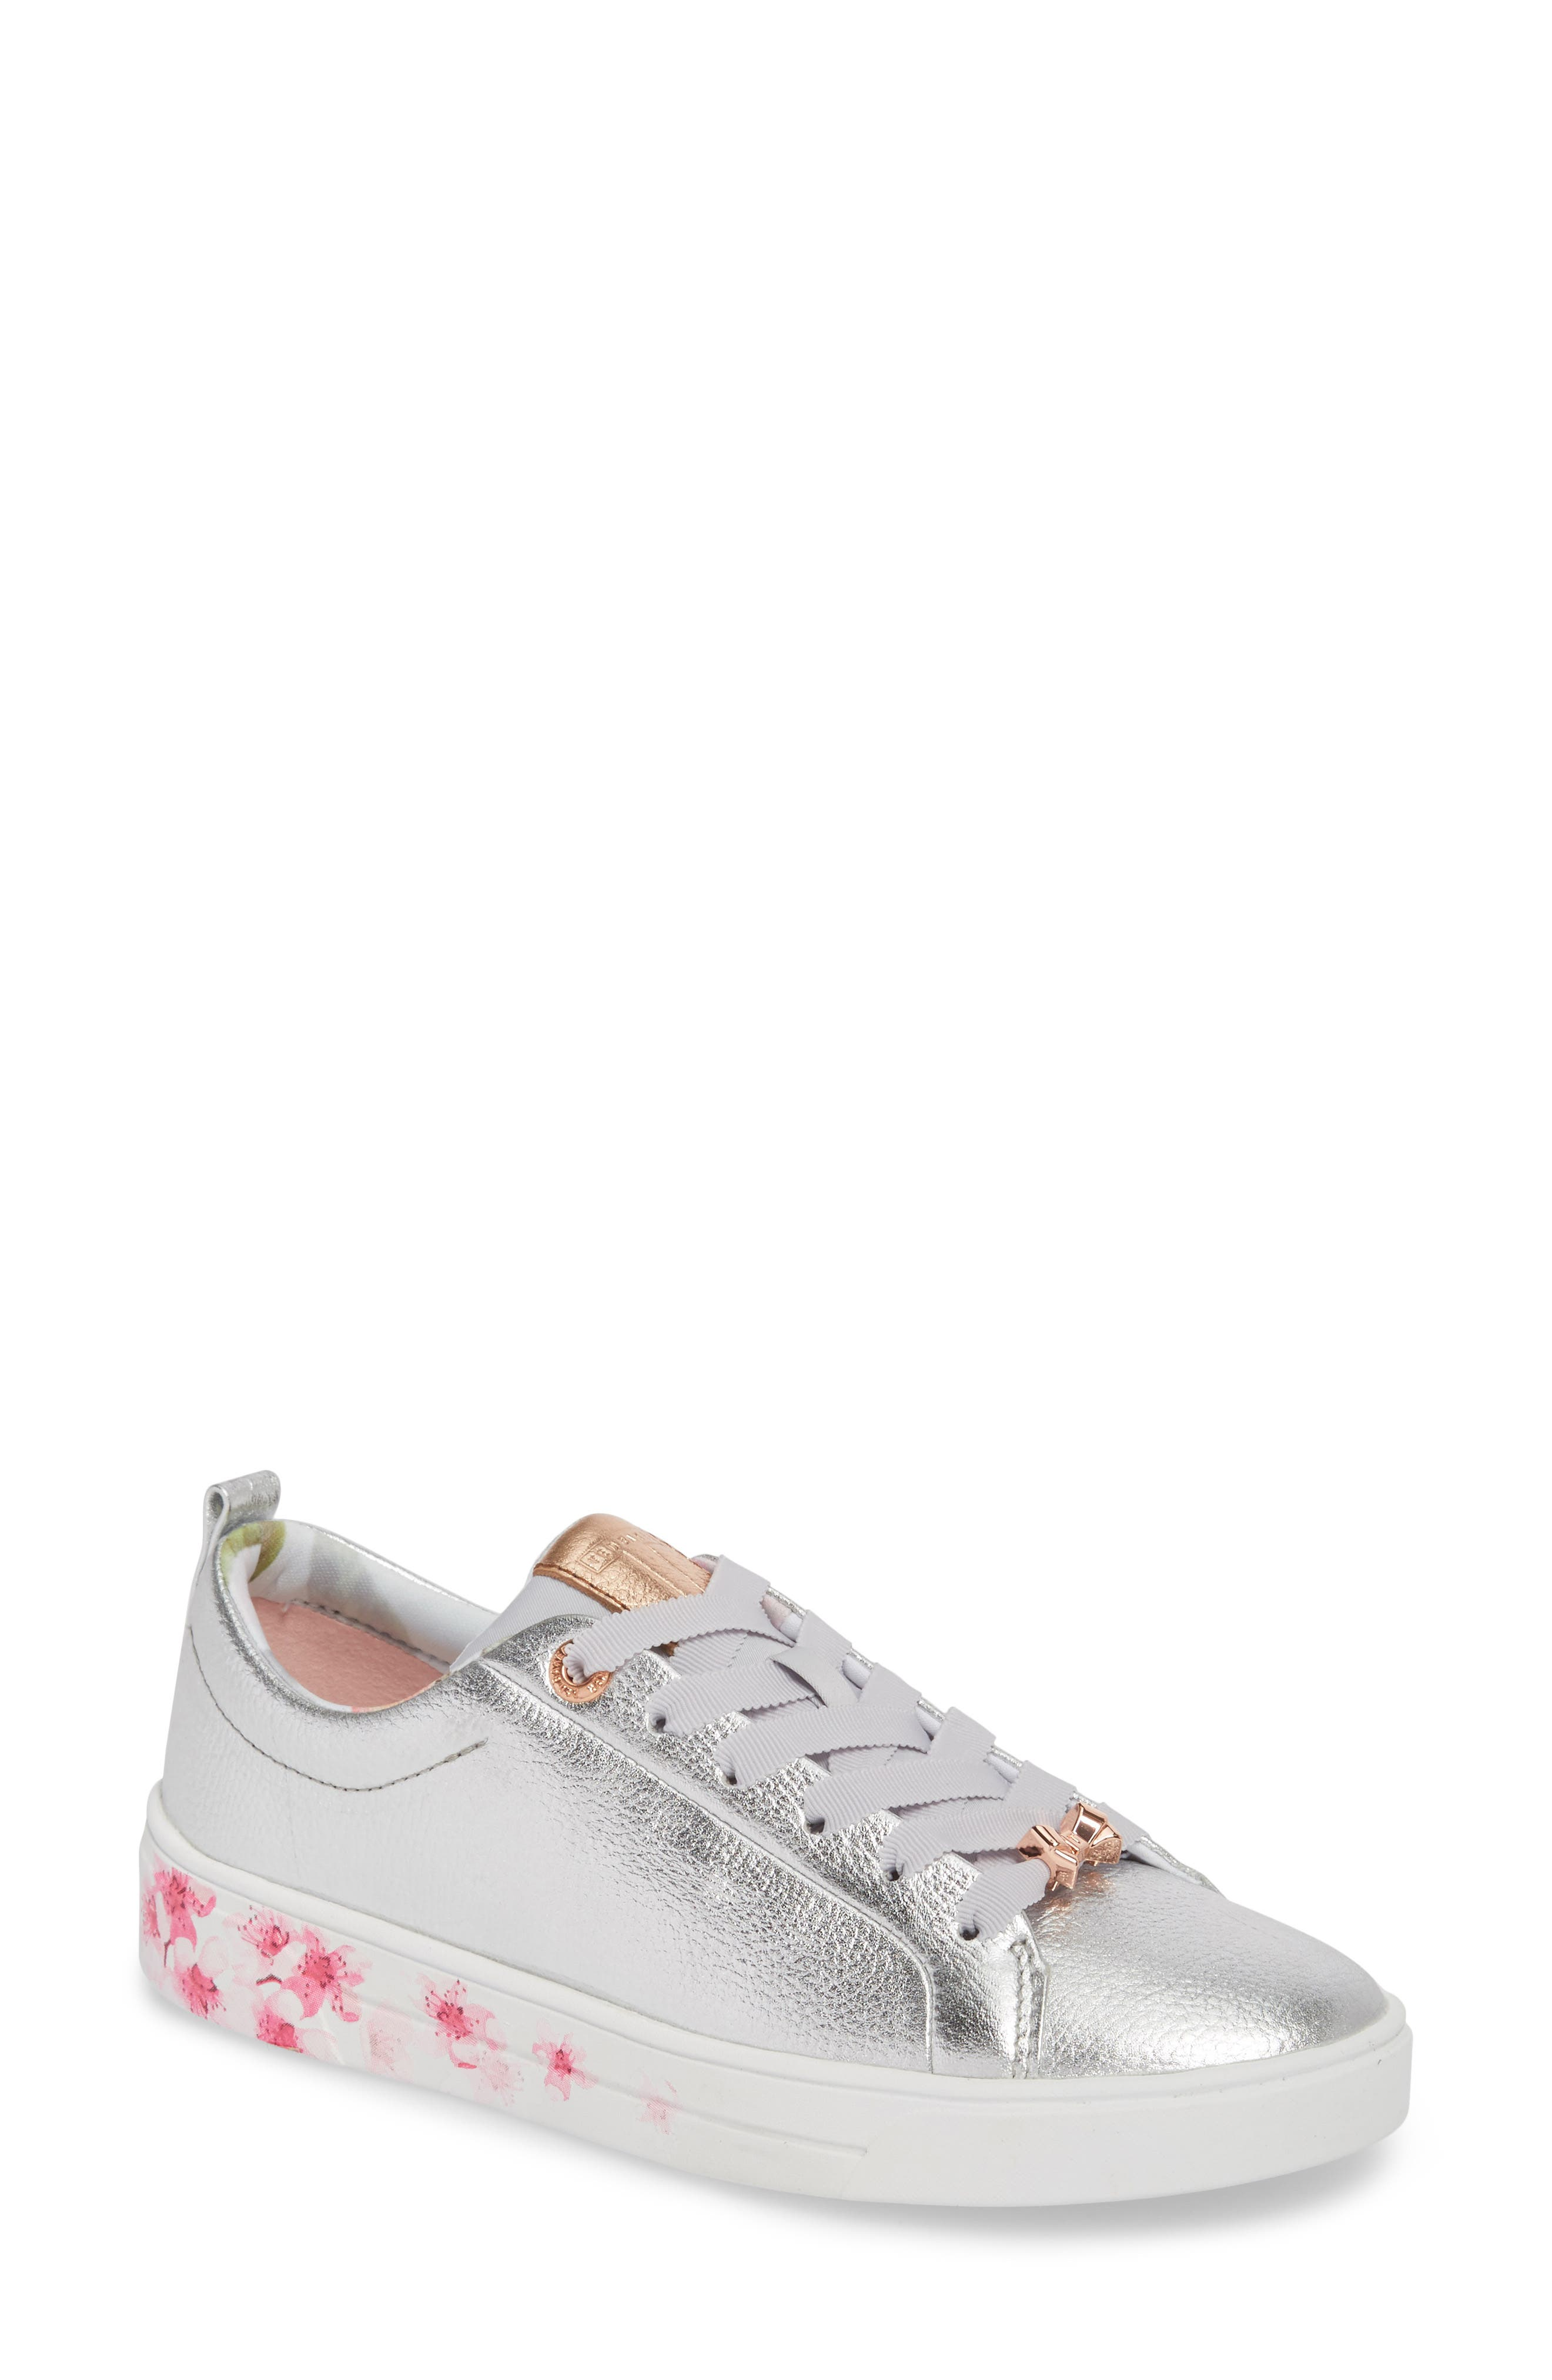 Kelleip Sneaker,                             Main thumbnail 1, color,                             Silver/ Blossom Leather